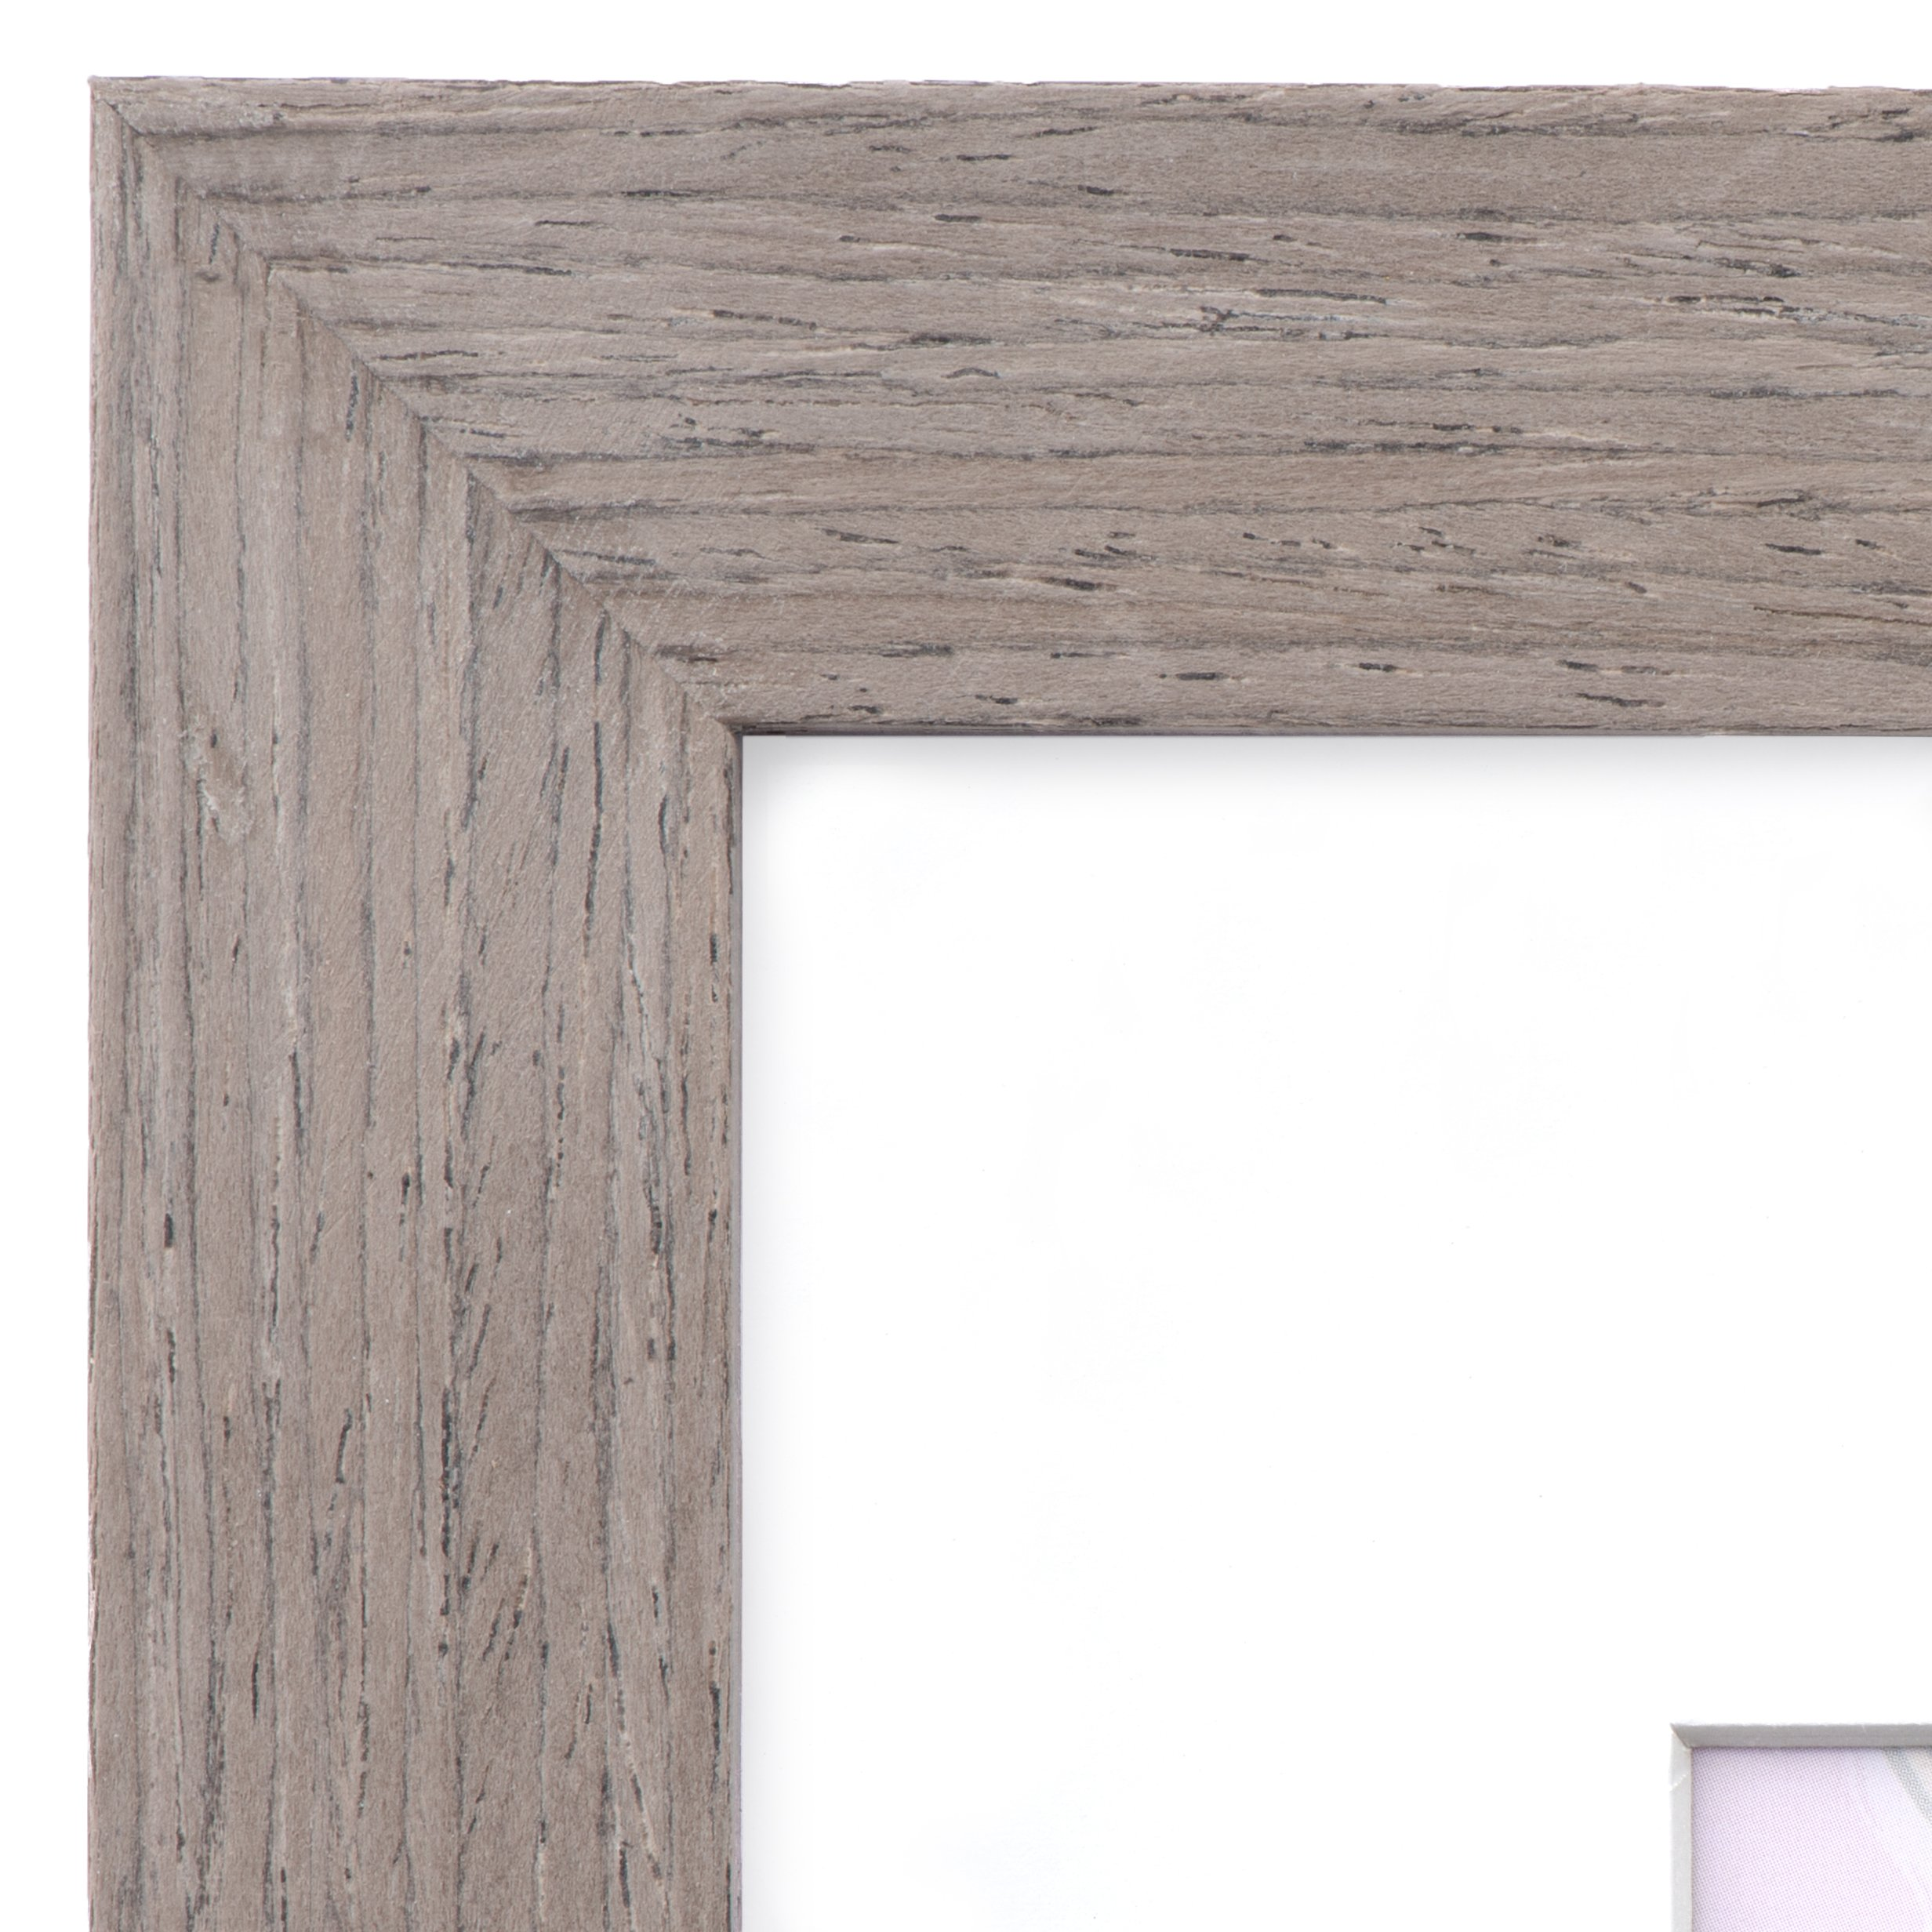 11x14 Picture Frame Walnut Wood - Matted to 8x10, Frames by EcoHome by Eco-home (Image #1)